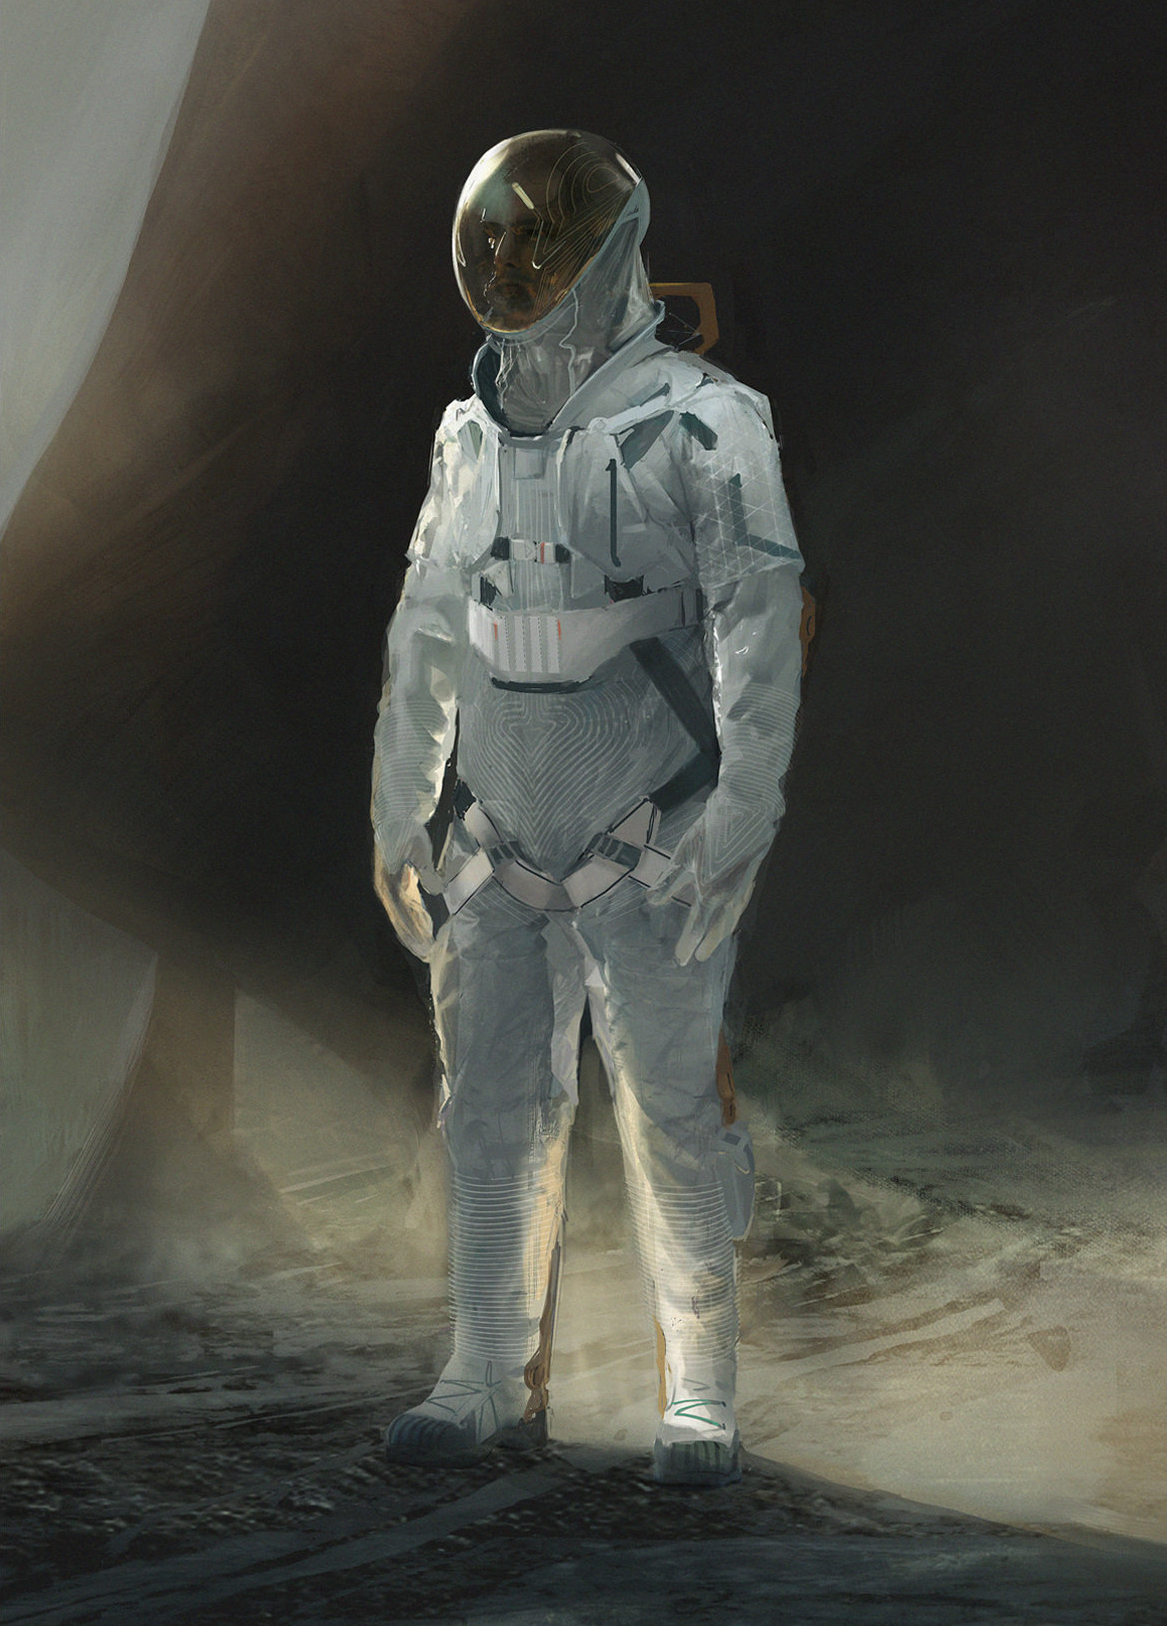 Постер Spacesuit, Saiful Haque original